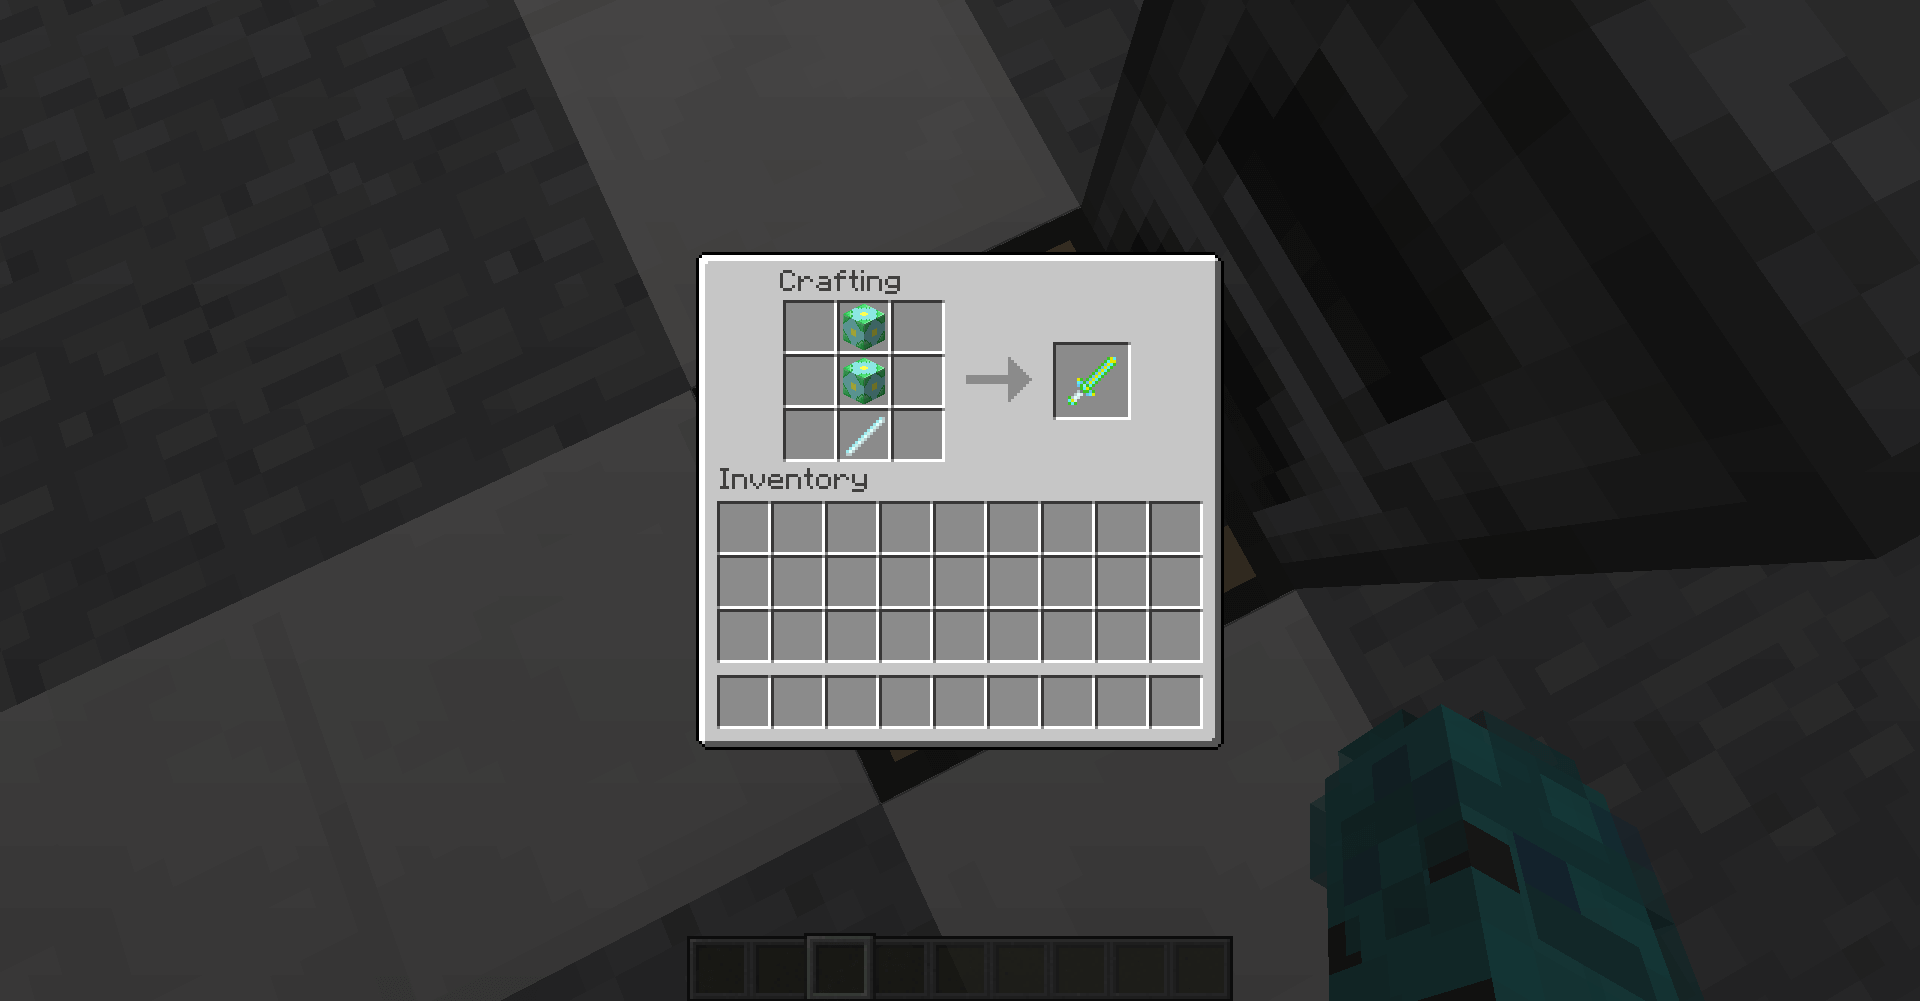 heaven-and-hell-mod-crafting-recipes-7.png